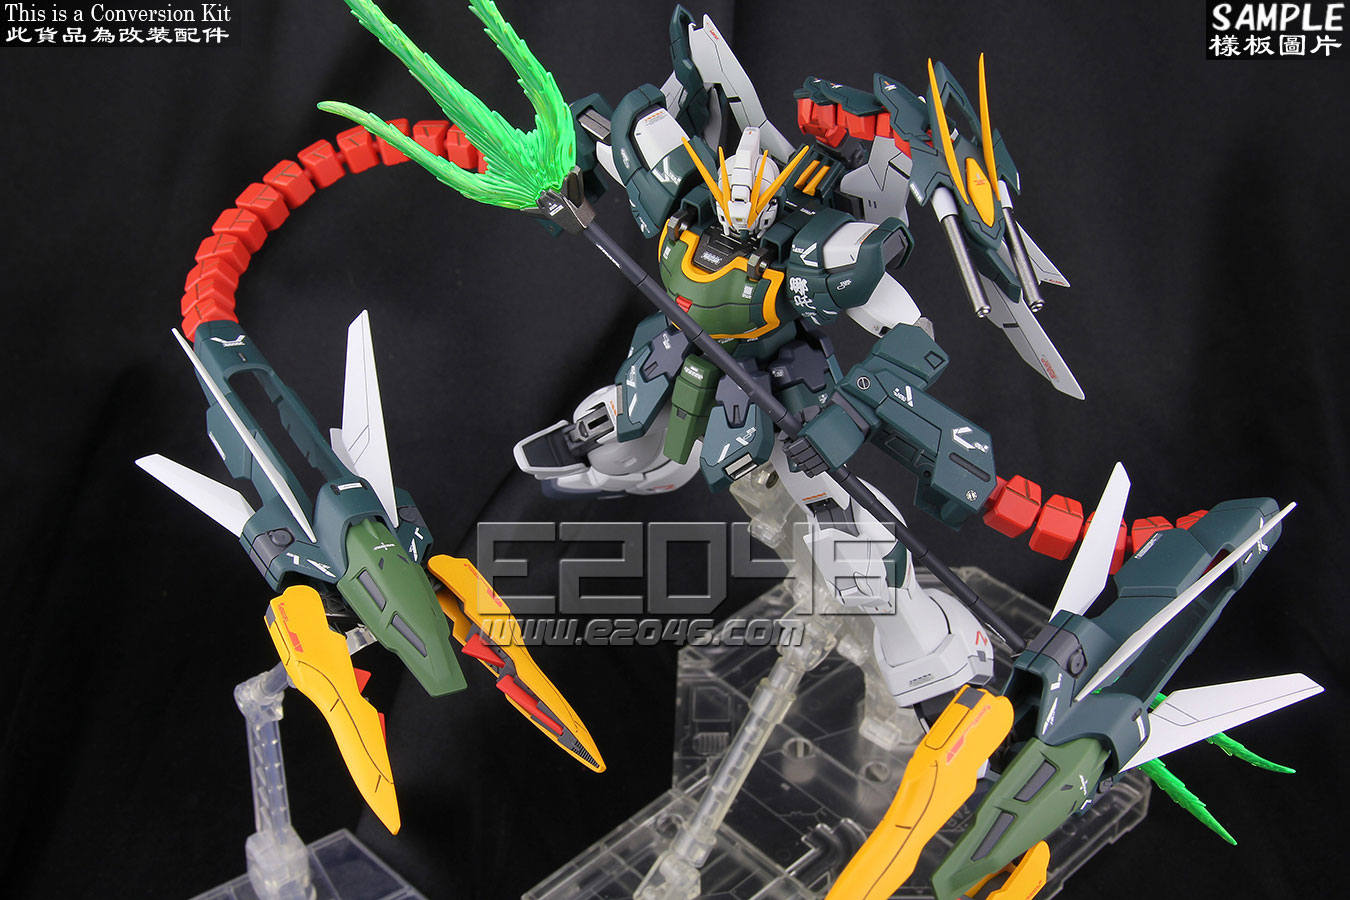 XXXG-01S2 Altron Gundam Conversion kit